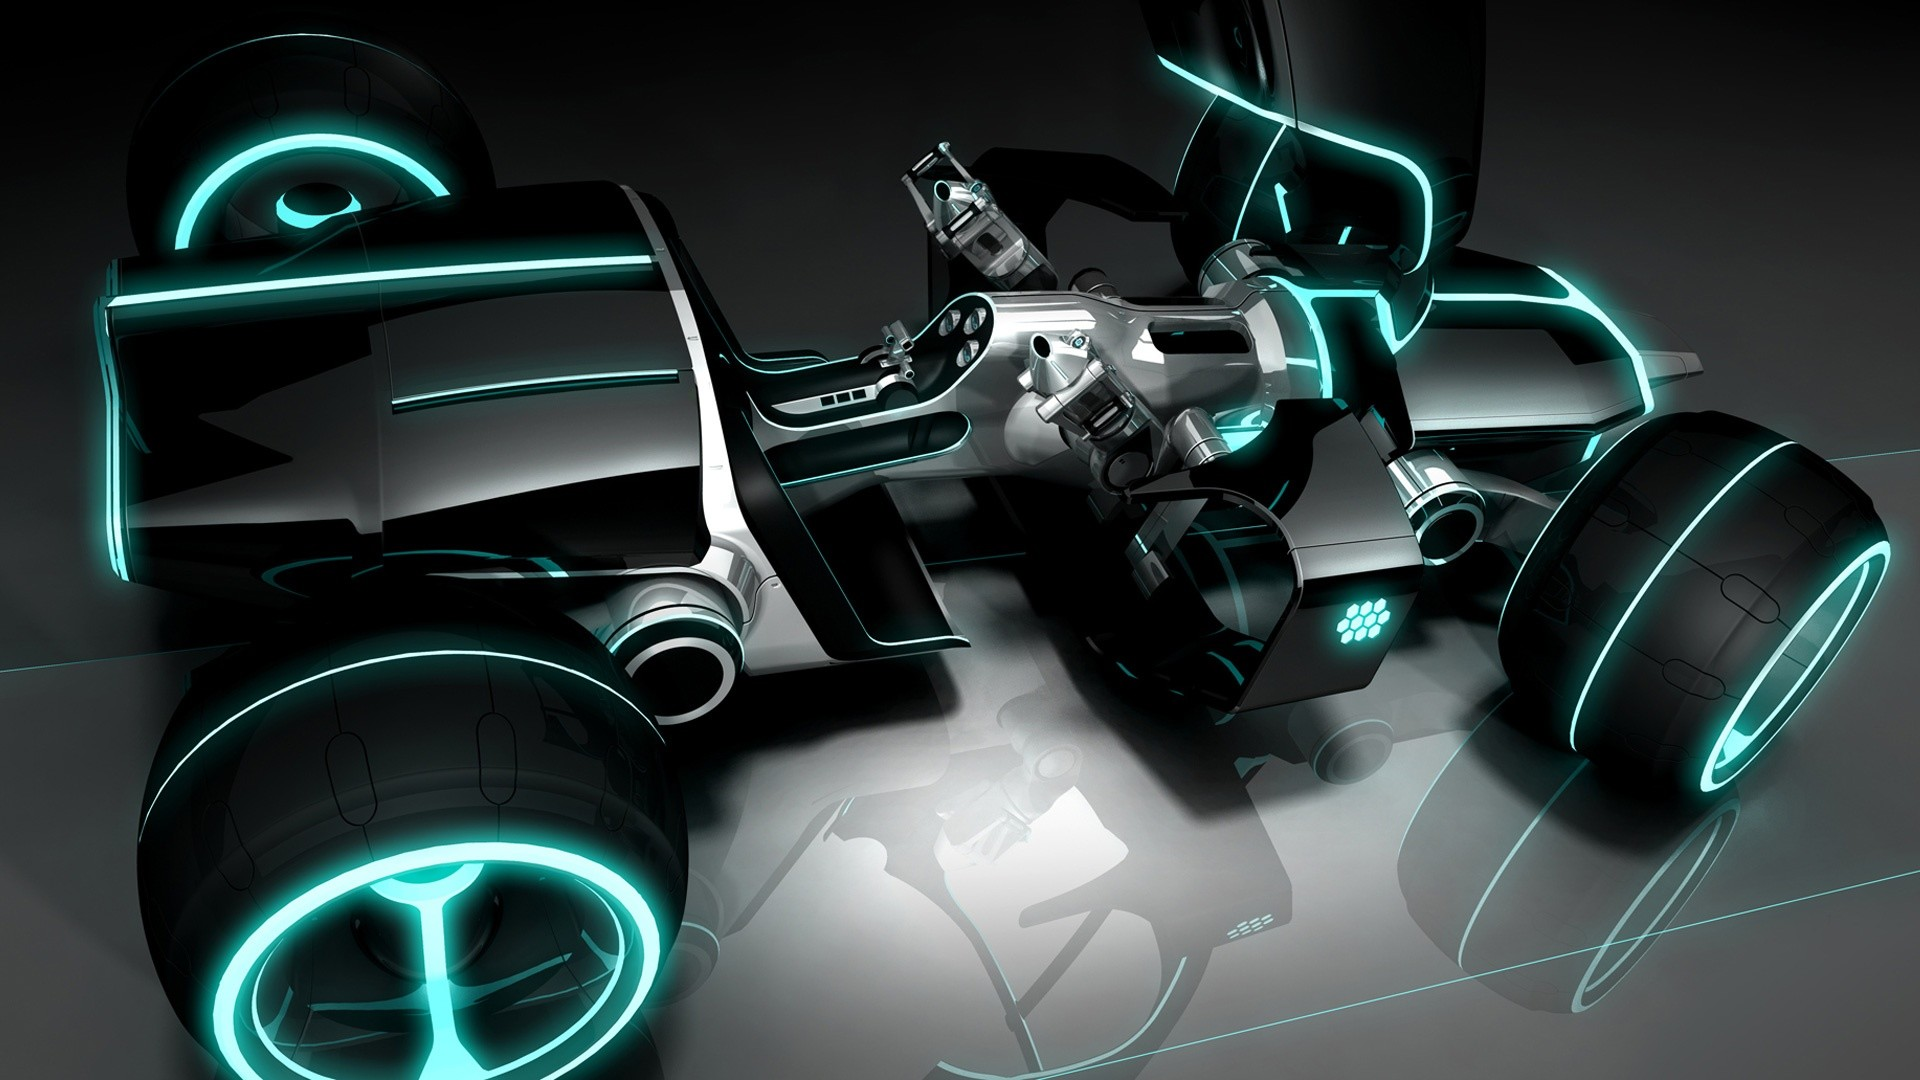 1920x1080 tron legacy hd wallpaper car. Â«Â«